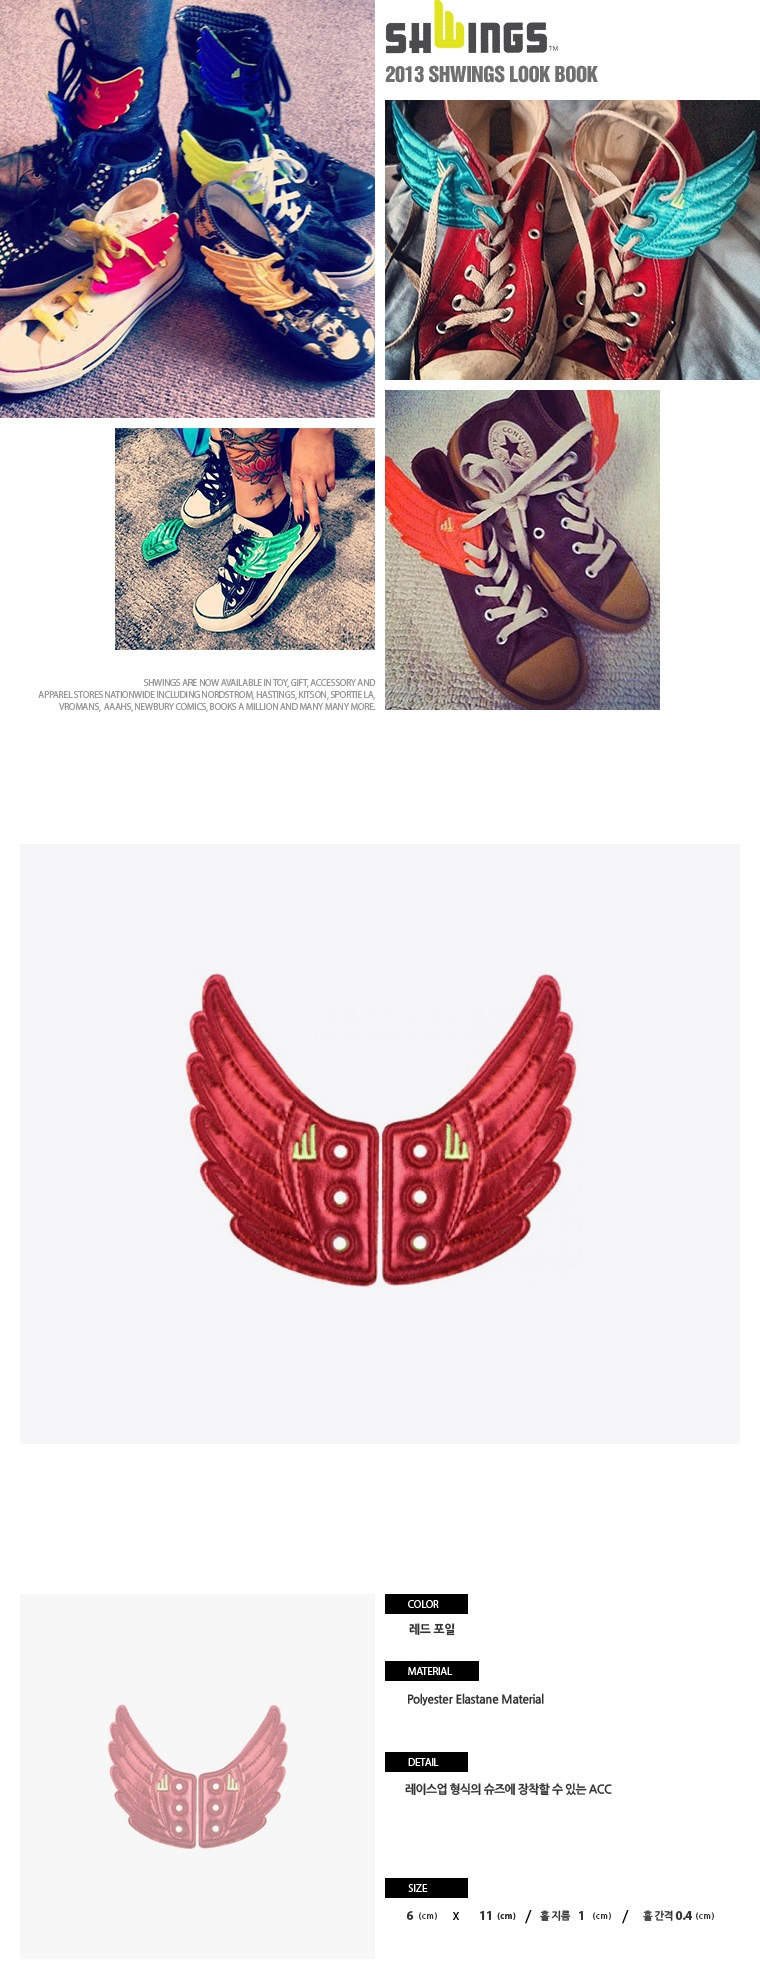 Red Shwings Moreno Foil Lace In Wings For Shoes